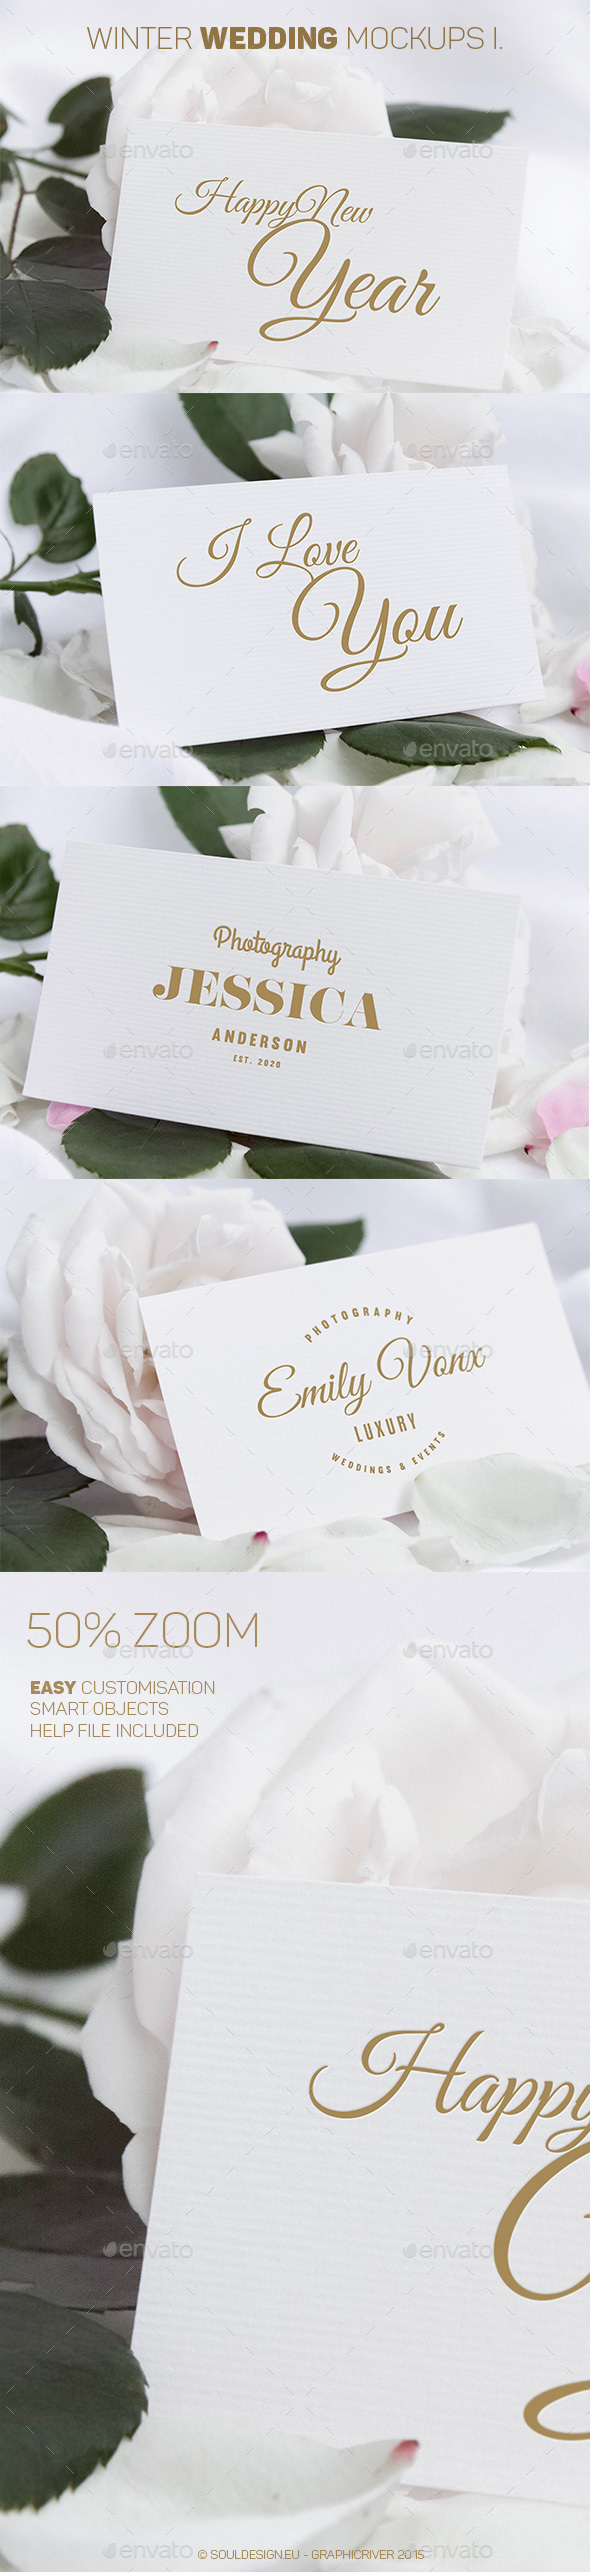 Winter Wedding Mockups I. - Miscellaneous Print